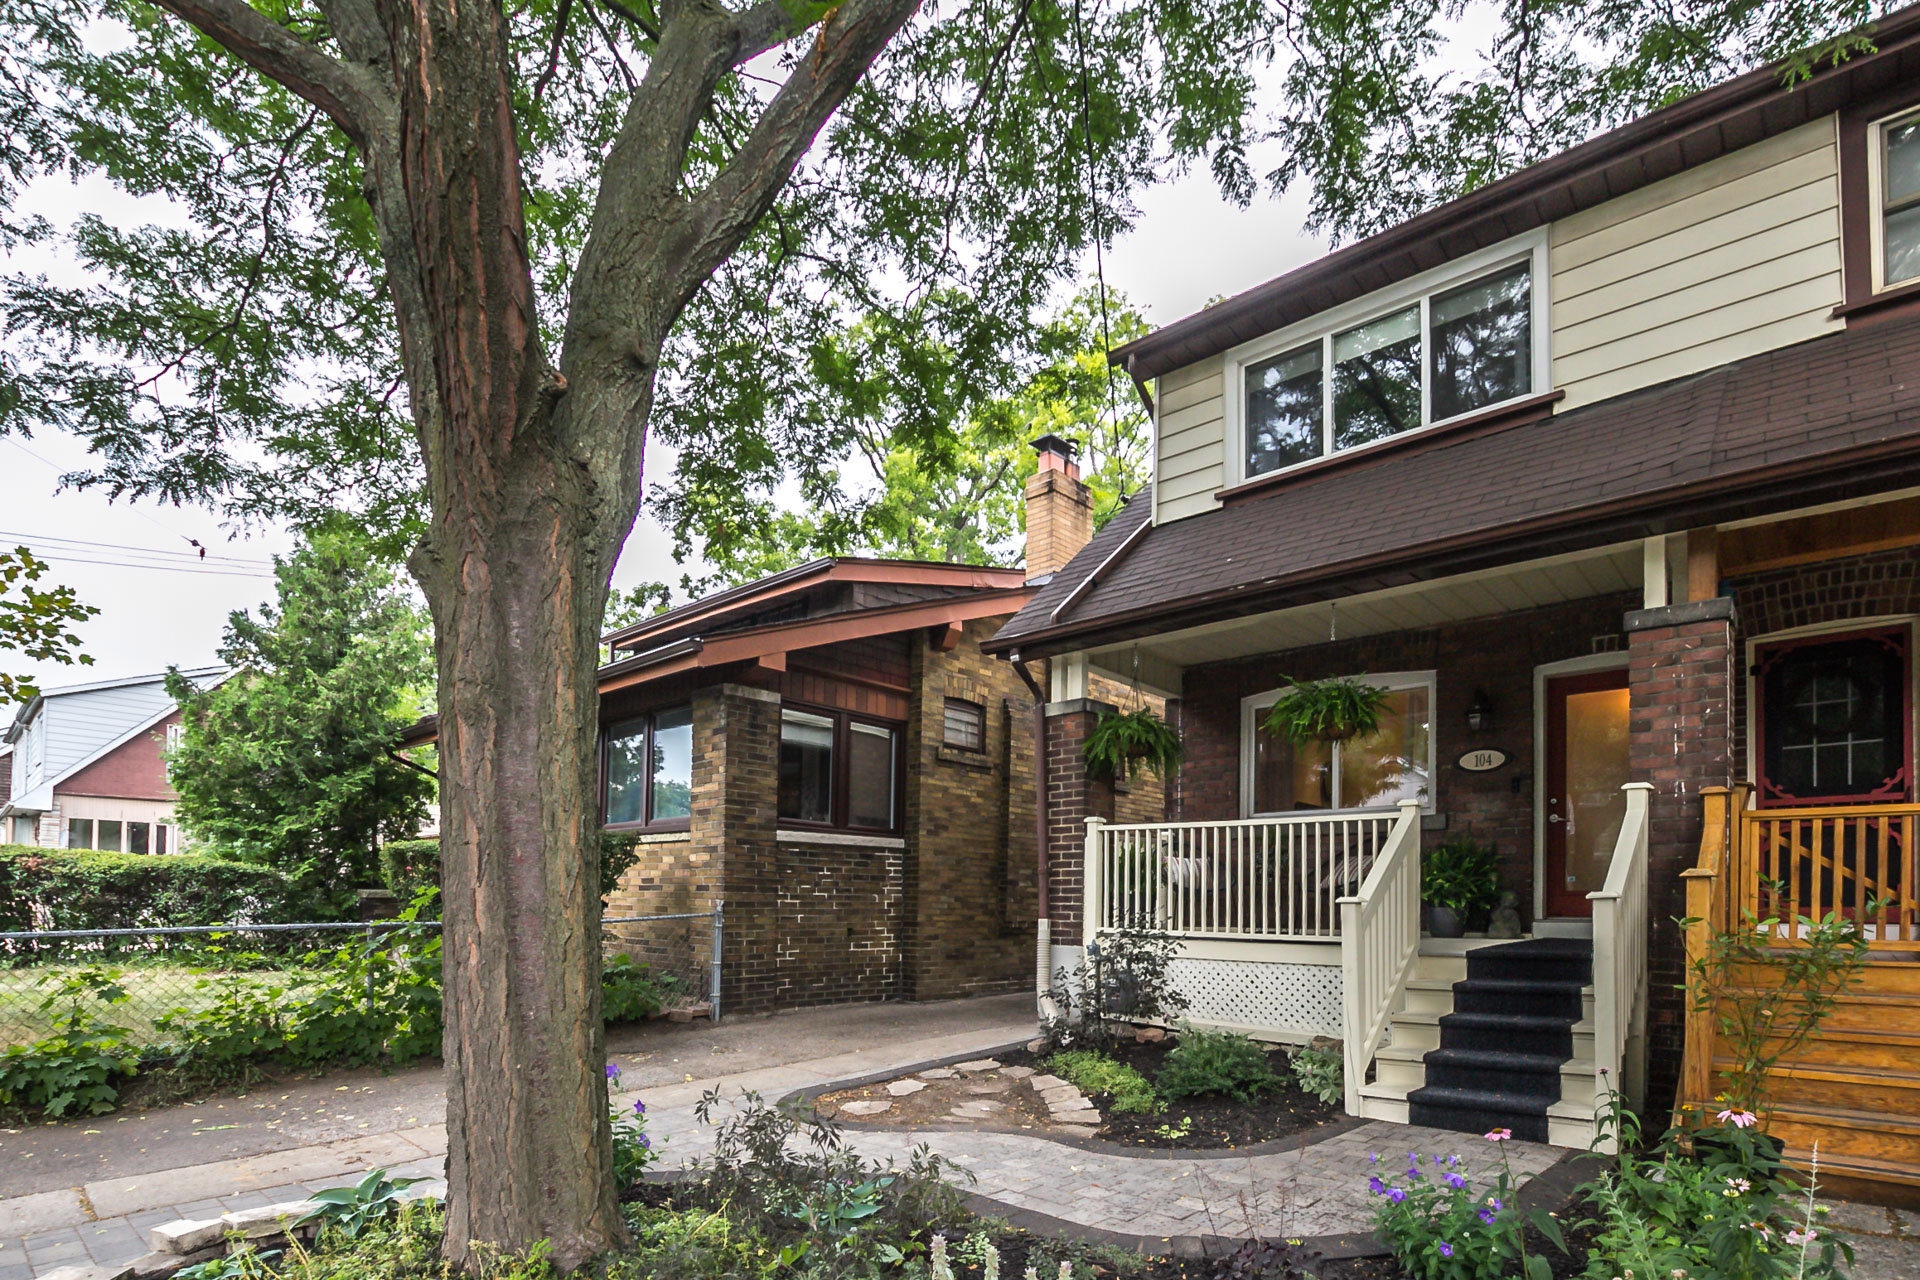 104 Oakcrest Avenue - SOLD